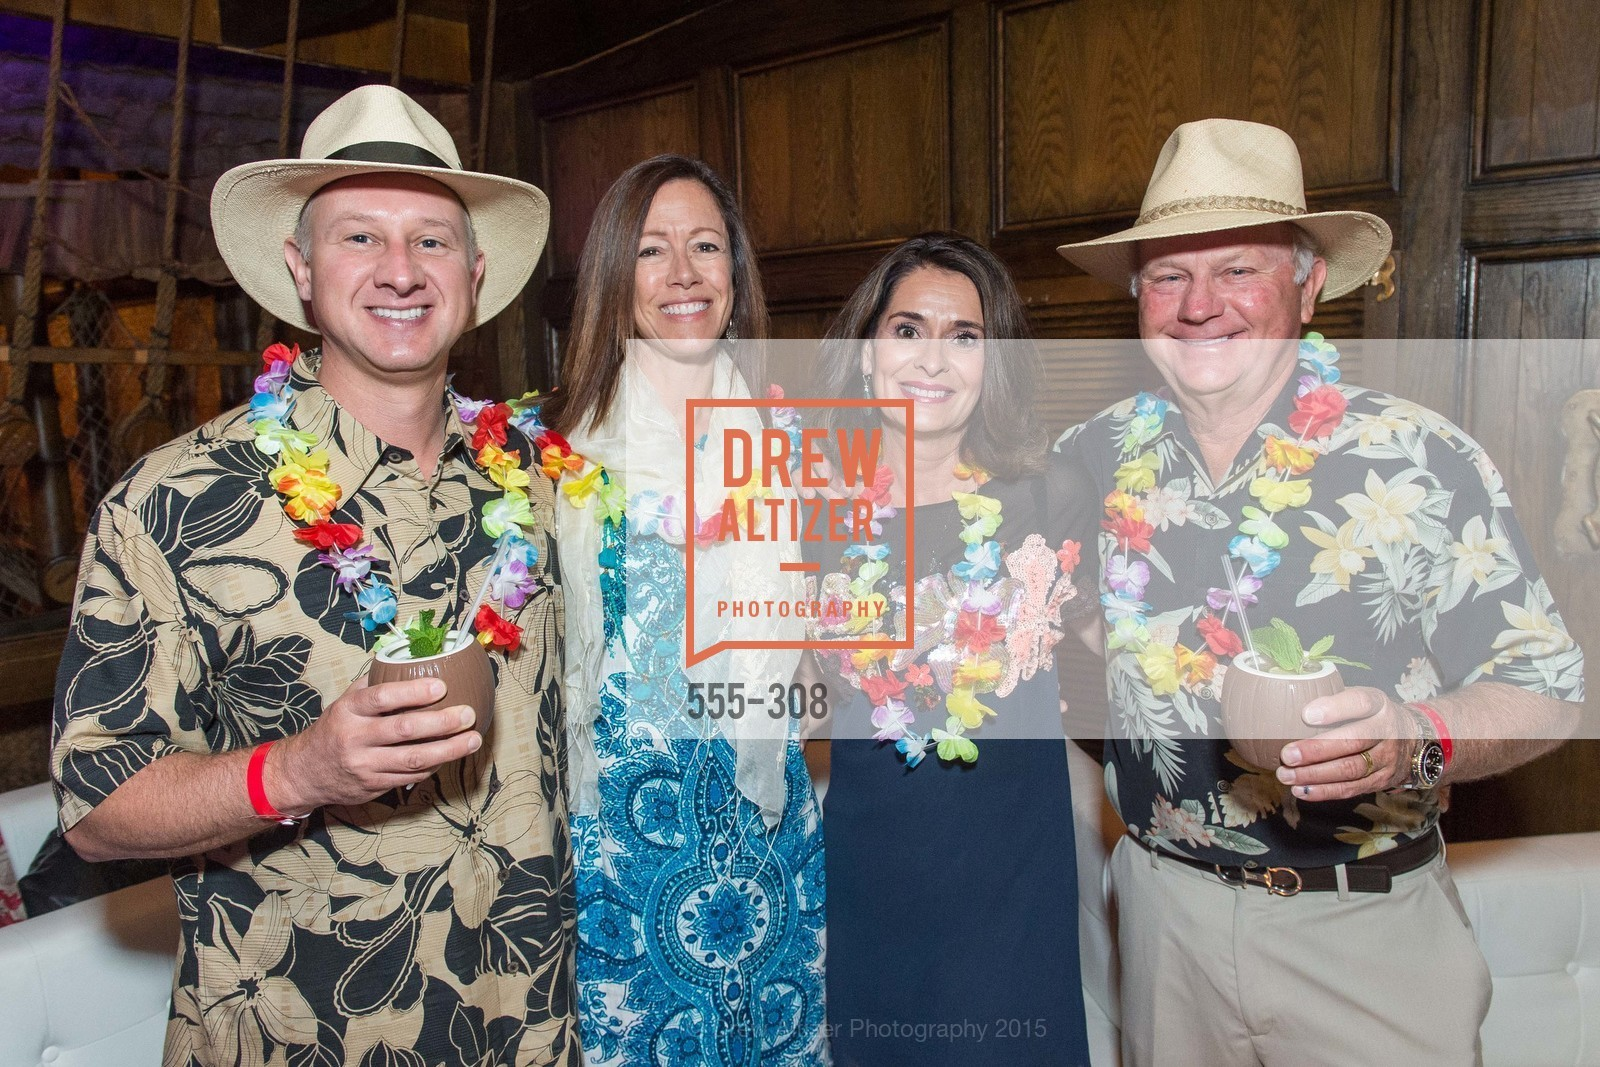 Marty Cepkauskas, Allison Mortimer, Debbie Saunders, Jim Saunders, Tonga Room & Hurricane Bar Celebrates 70 Years of Tiki Glory, Fairmont, September 23rd, 2015,Drew Altizer, Drew Altizer Photography, full-service agency, private events, San Francisco photographer, photographer california